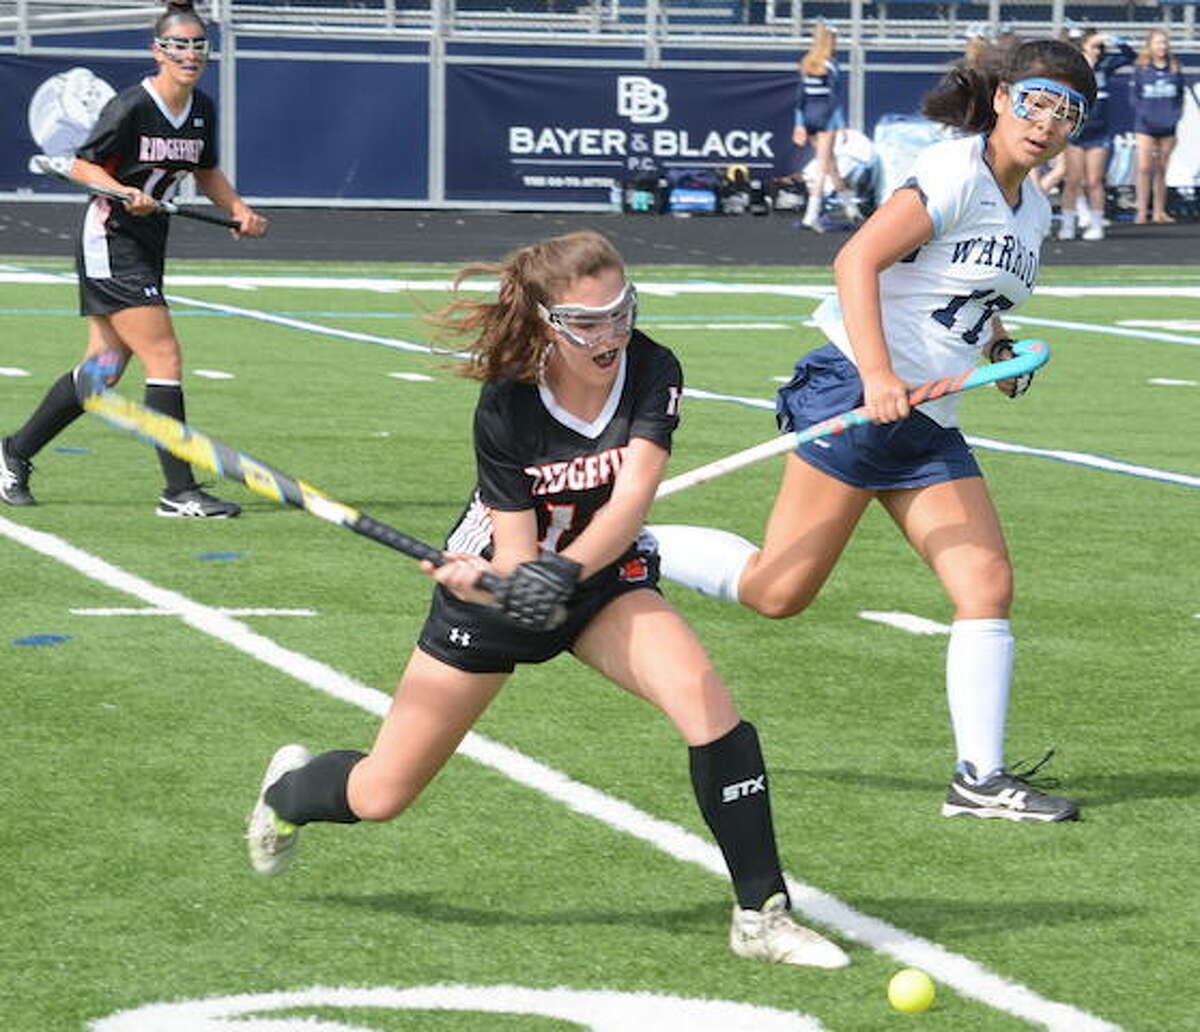 Ridgefield's Jen Paul clears the ball during a field hockey game earlier this season. The Tigers fell to New Canaan, 2-0, on Monday. - Andy Hutchison photo